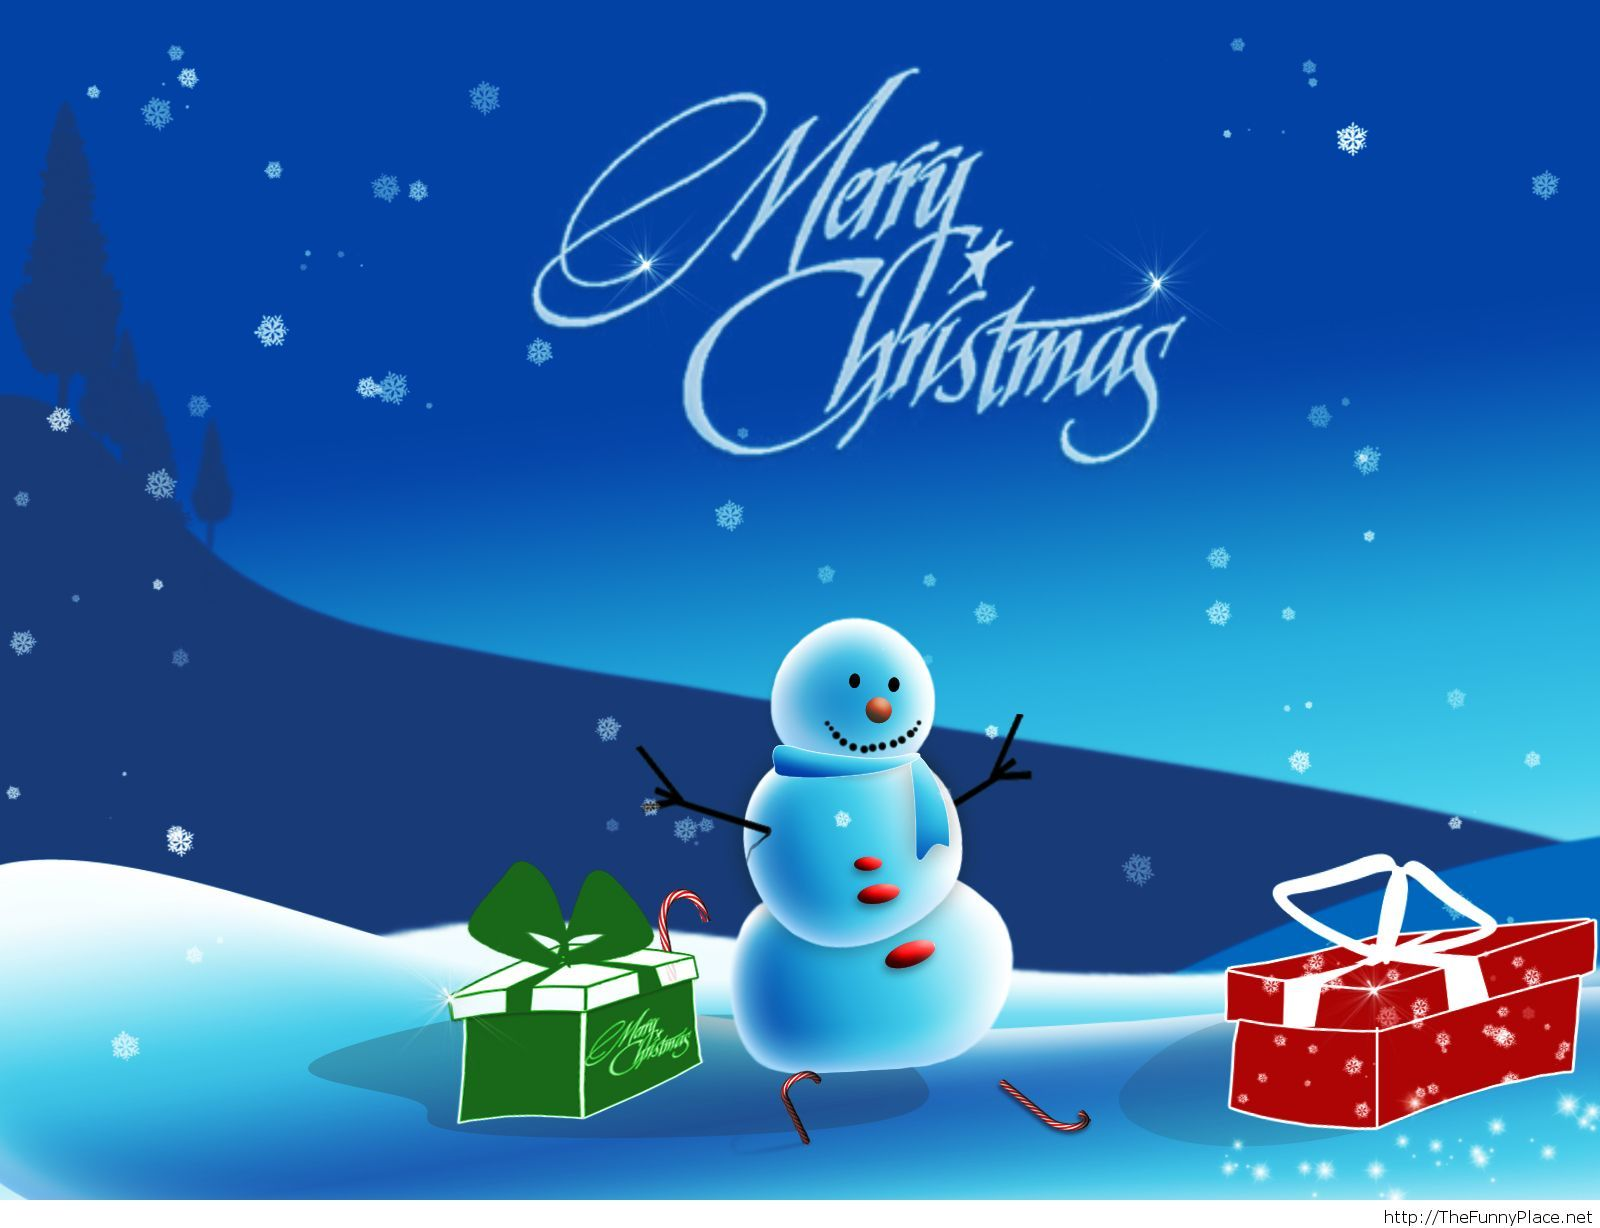 merry christmas wallpaper – thefunnyplace